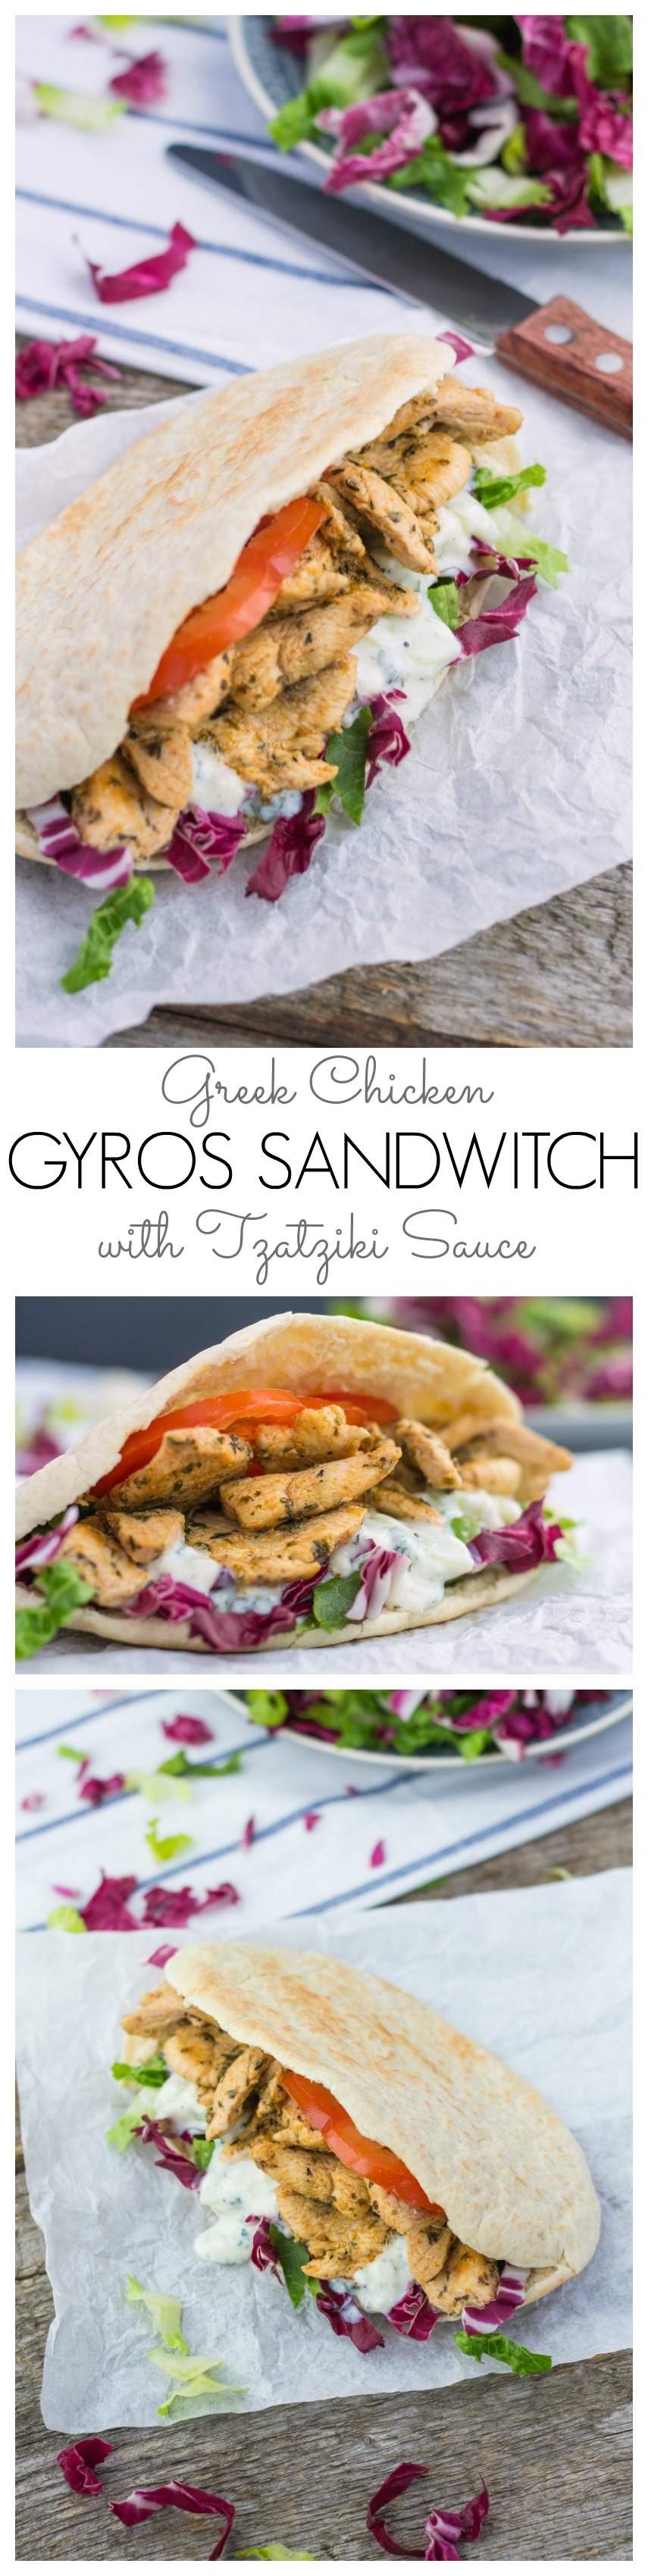 Greek Chicken Gyros Sandwitch